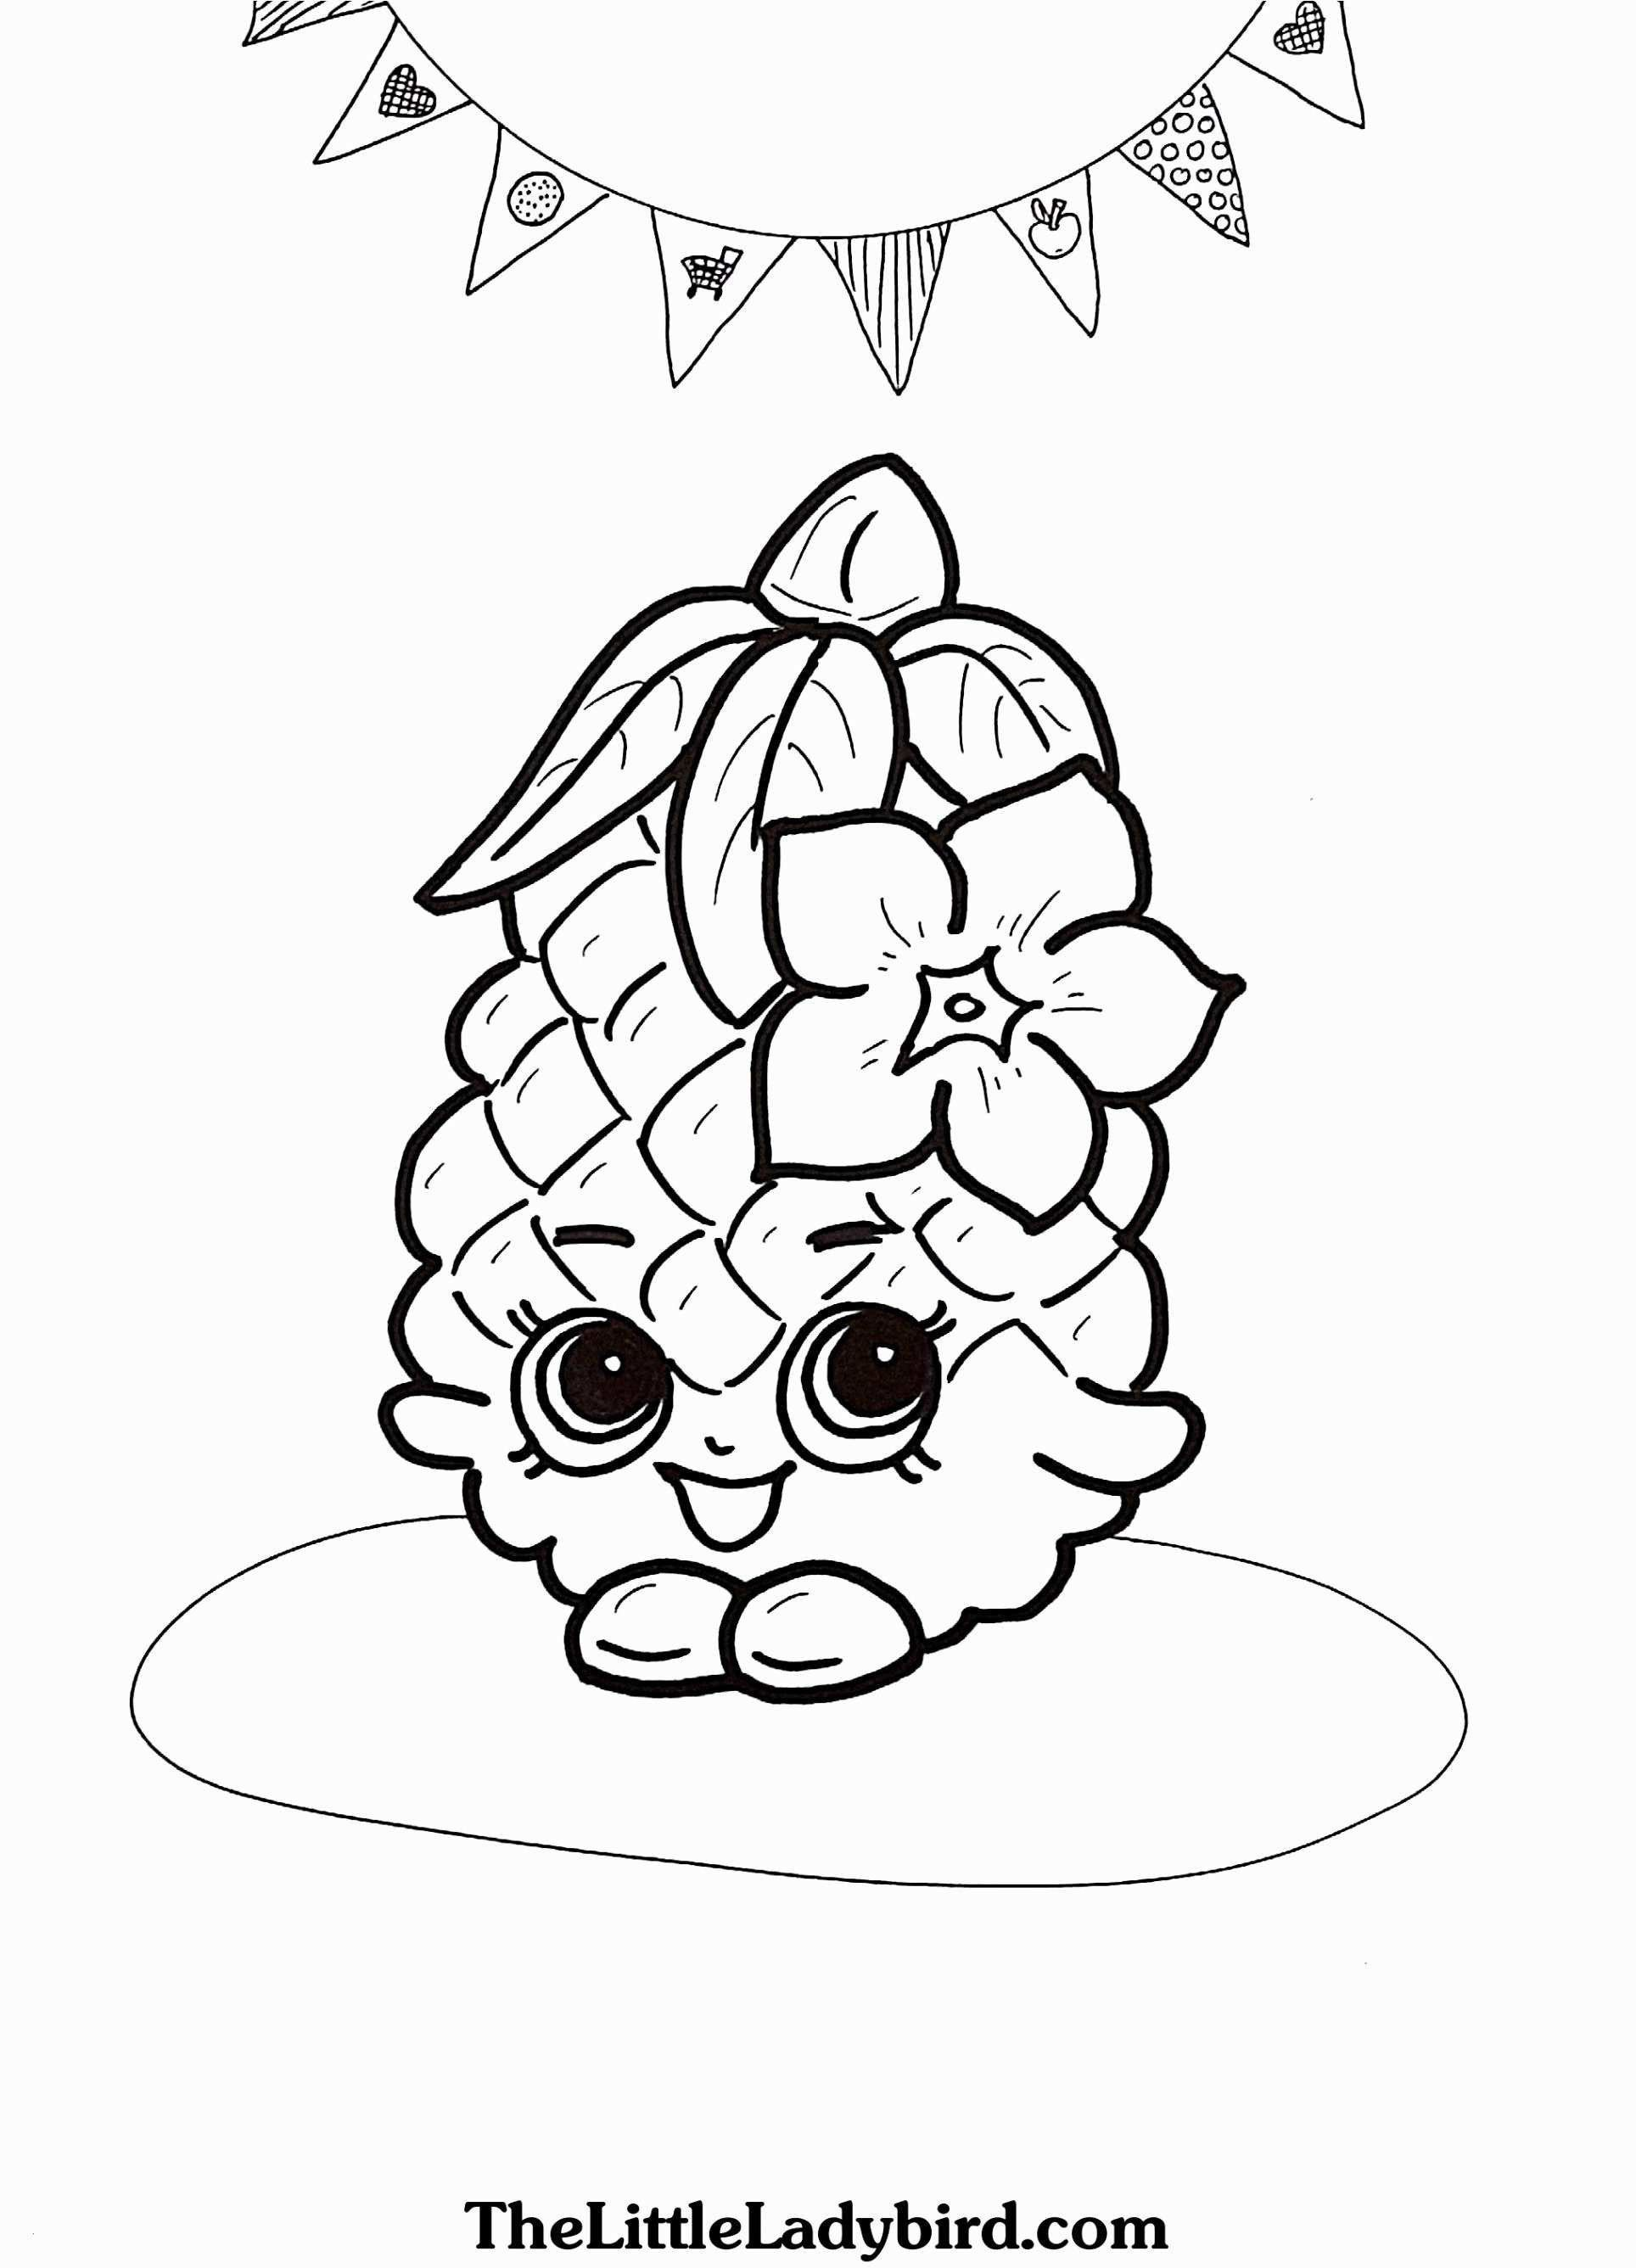 Pin Di Coloring Pages Ideas For Kids And Adult